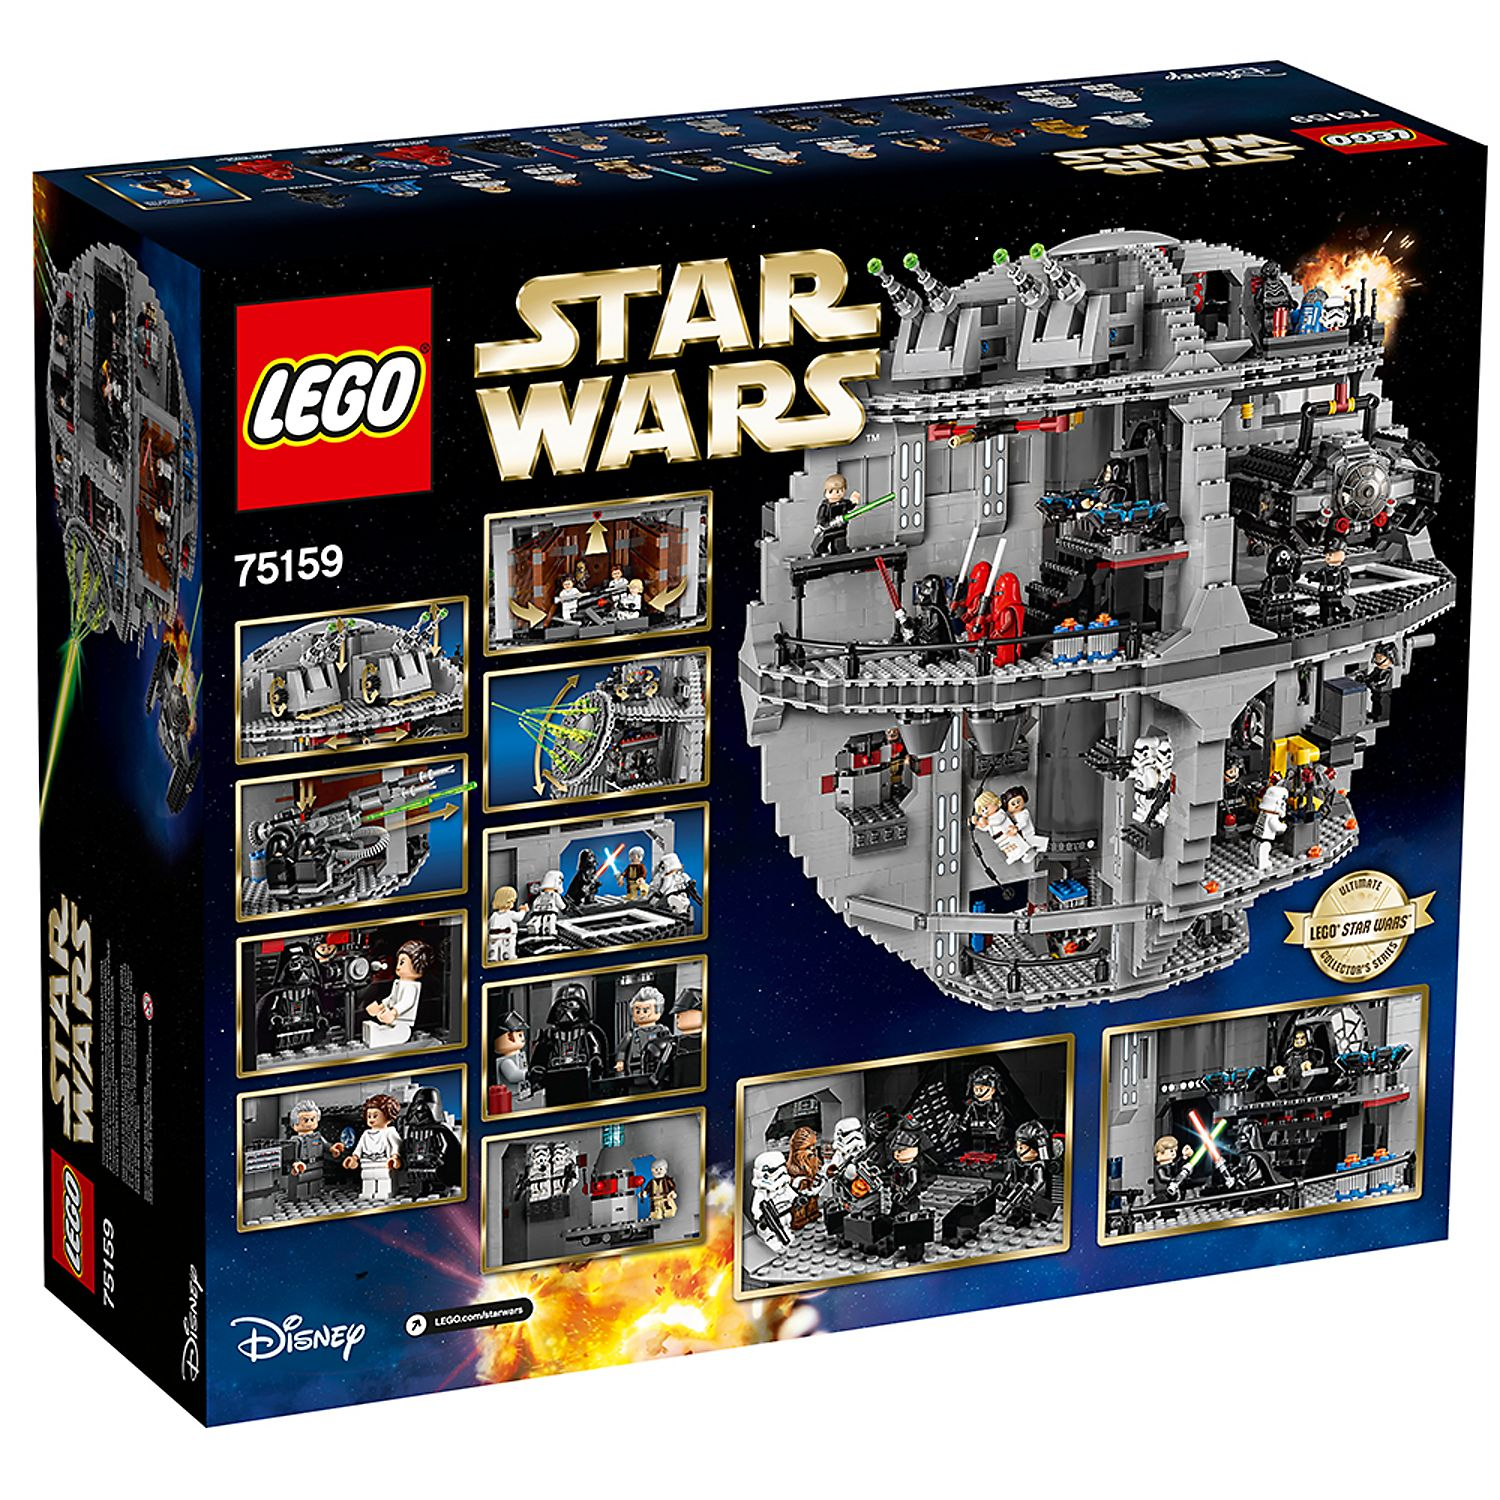 41acaee227d0 Death Star™ 75159 | Star Wars™ | Buy online at the Official LEGO® Shop US